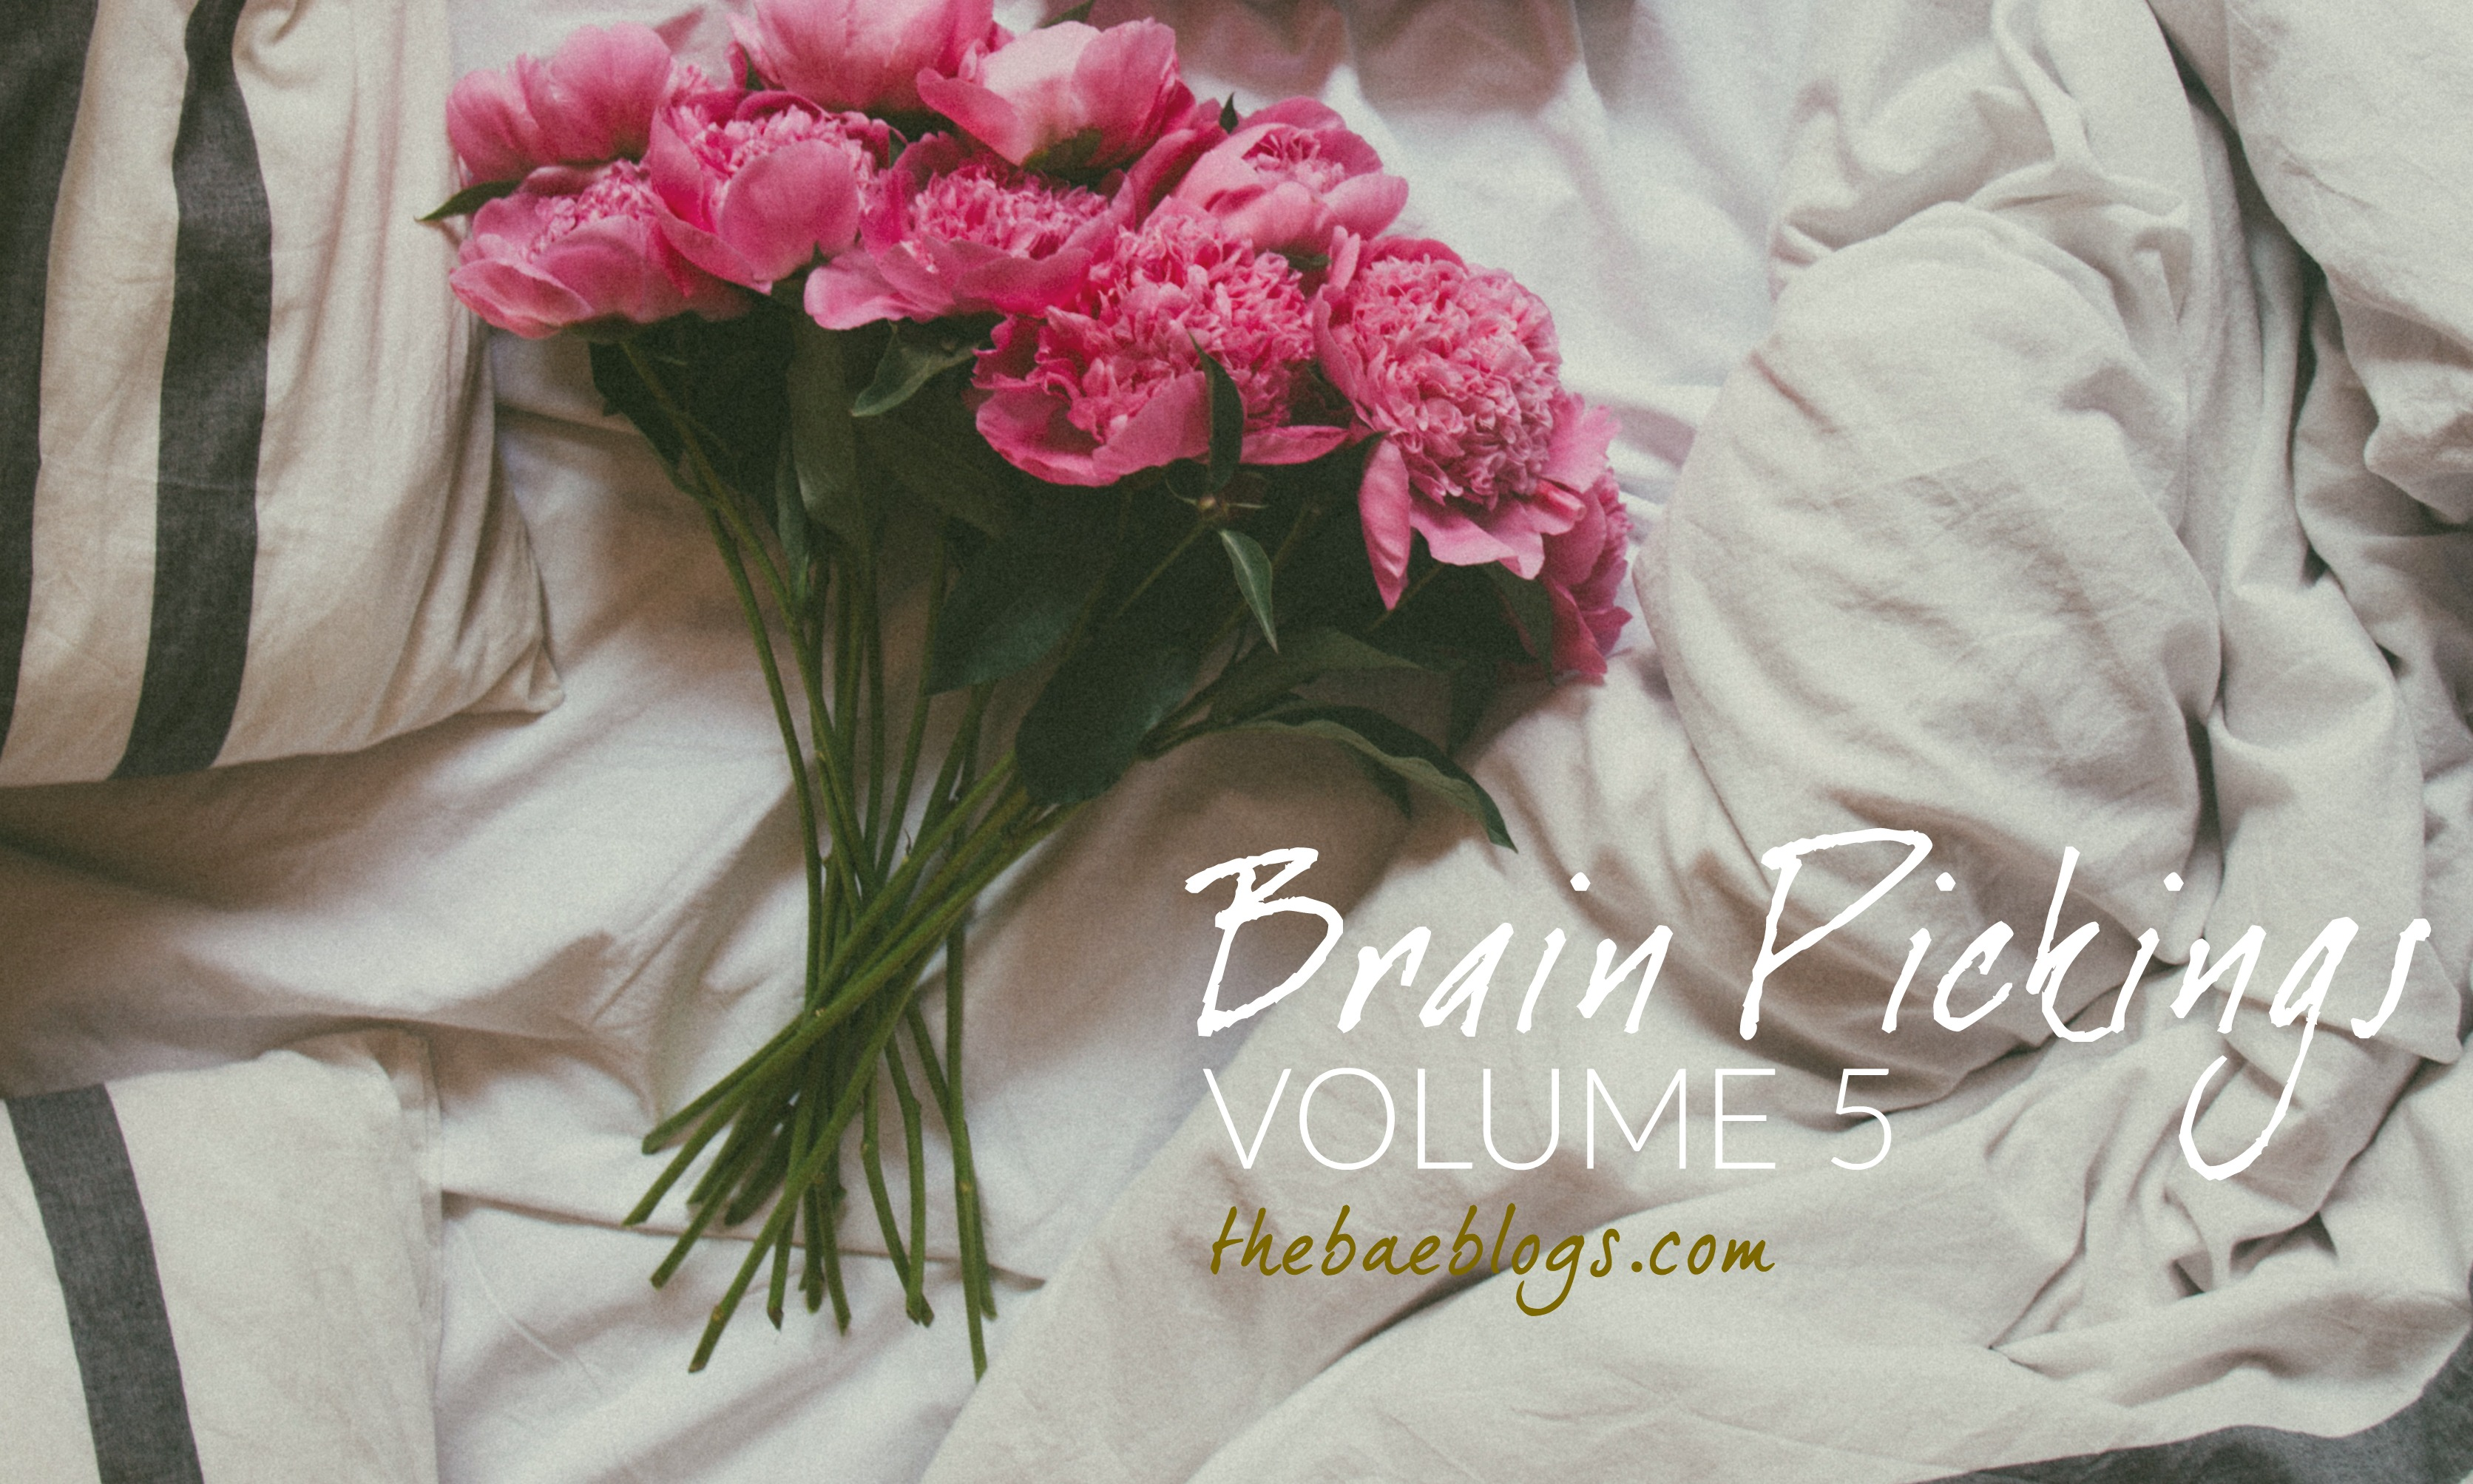 brain-pickings-vol-5